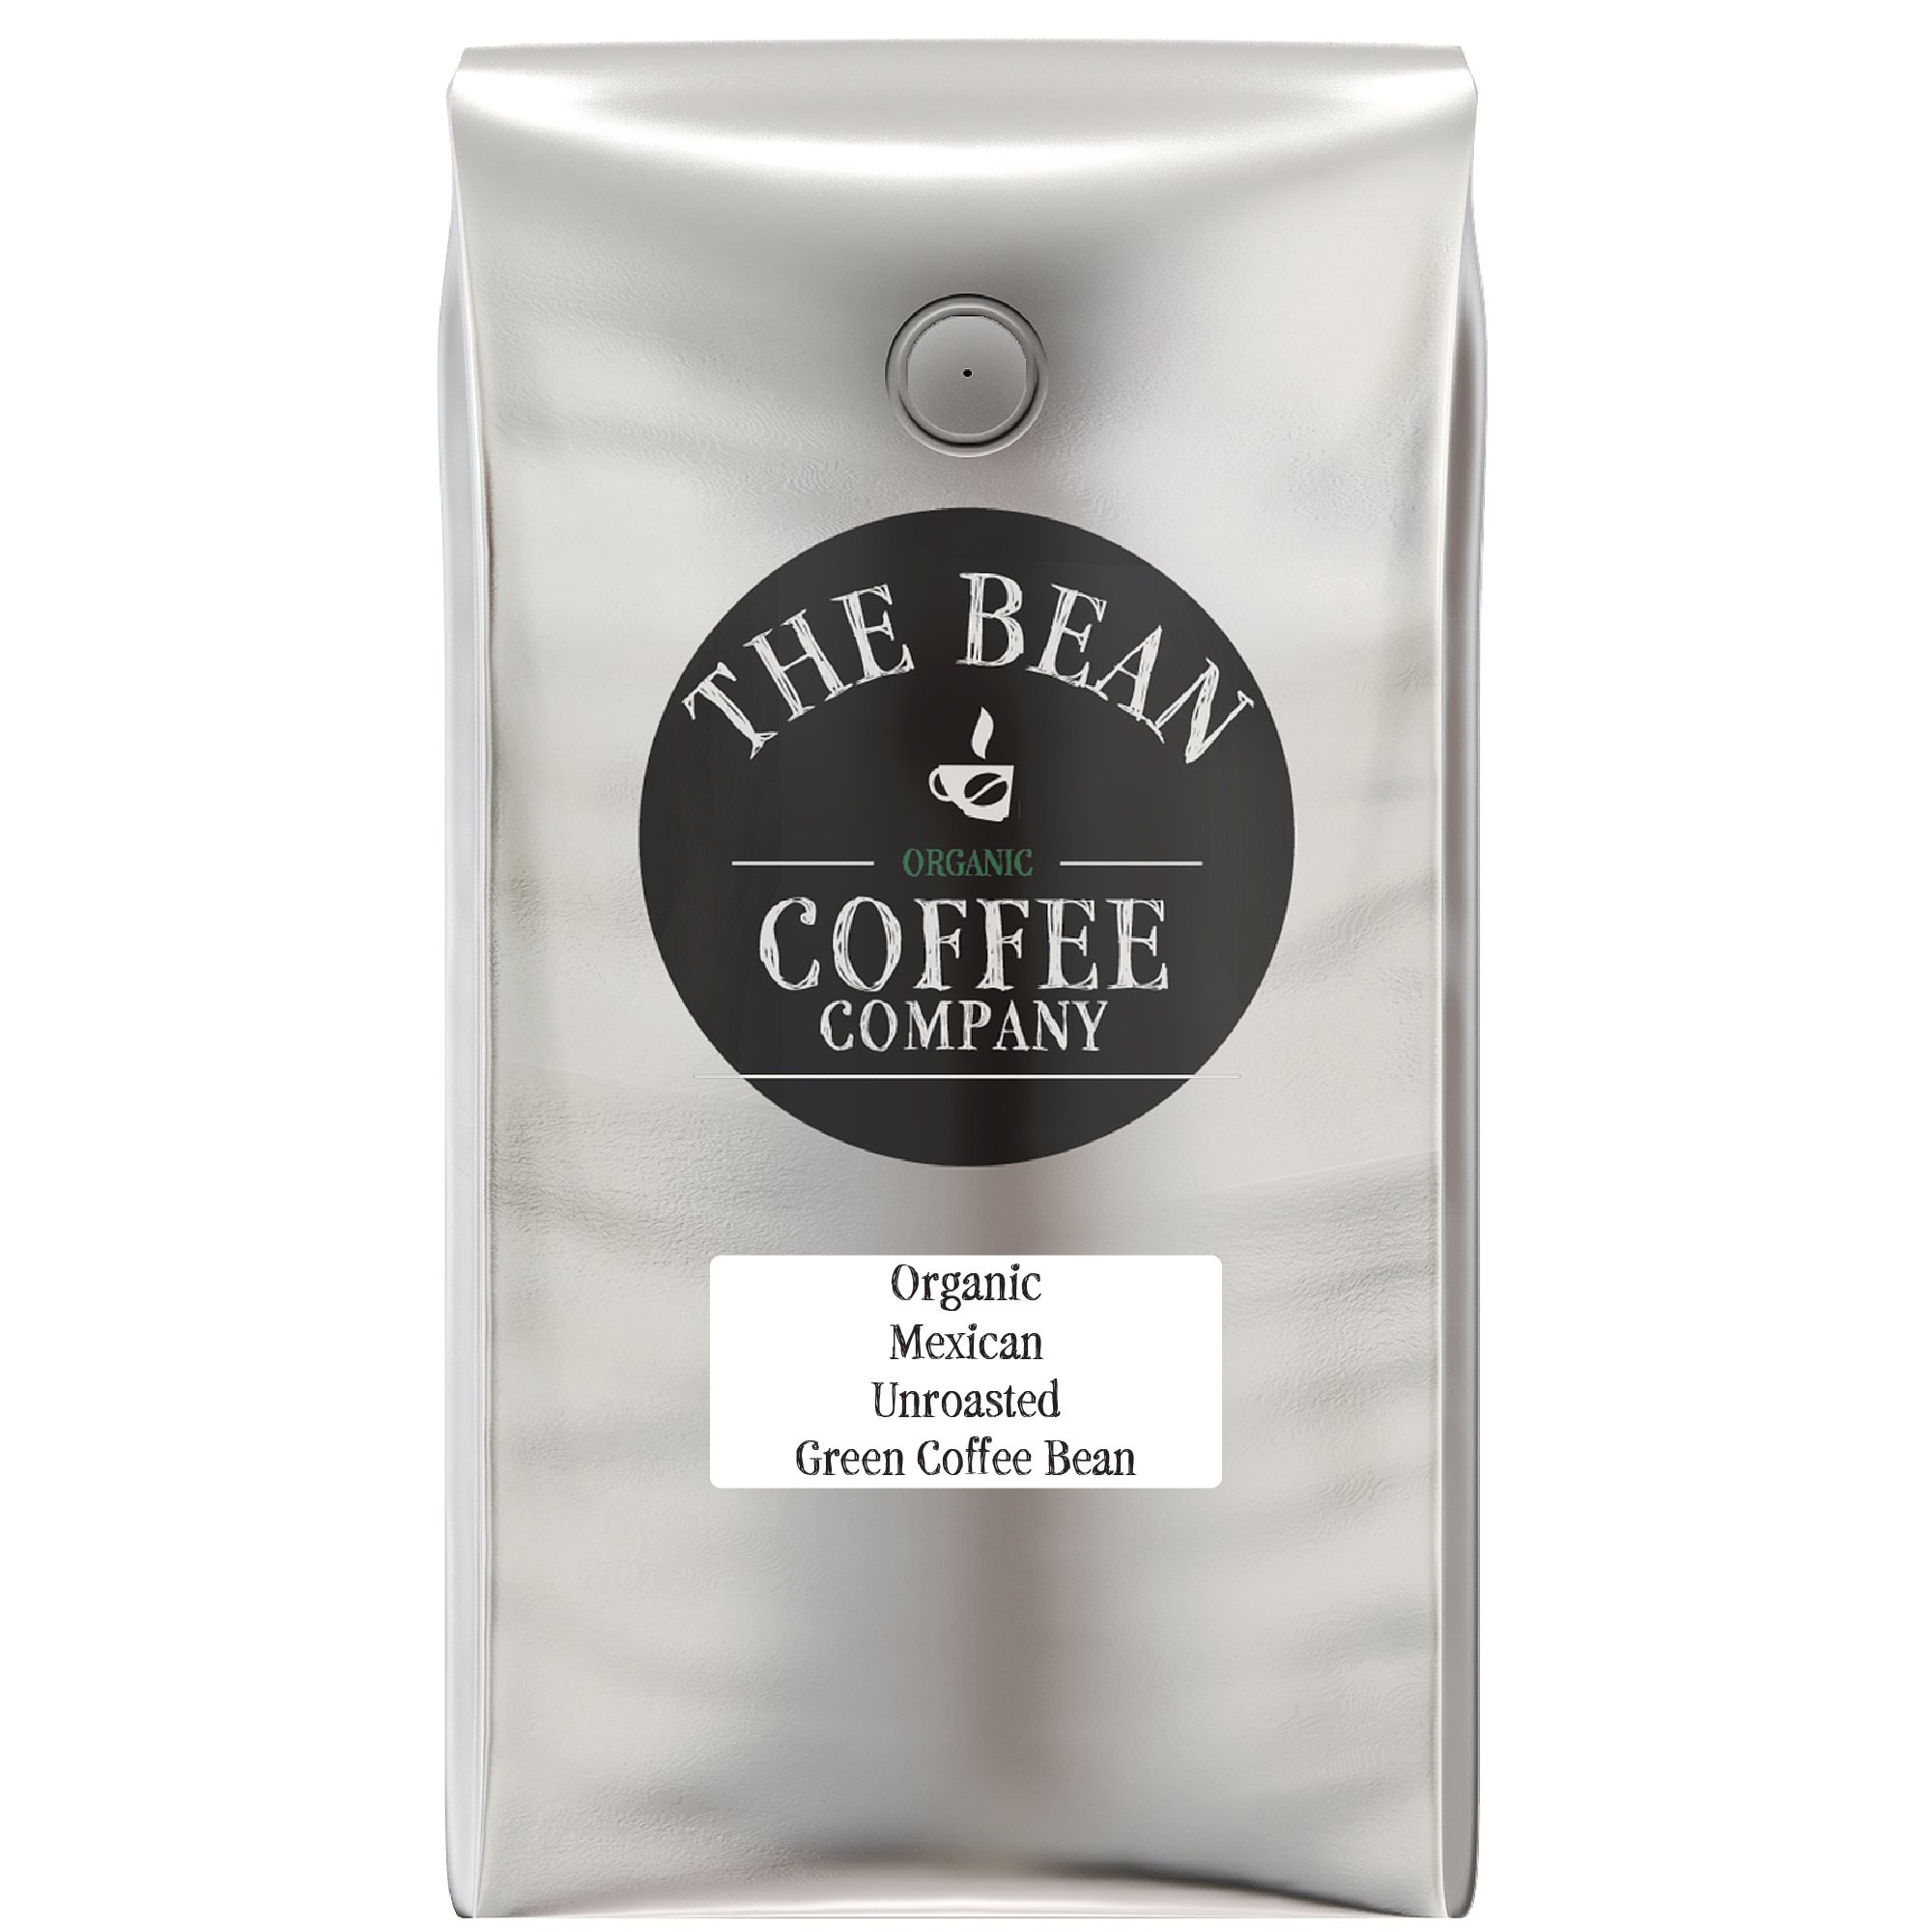 The Bean Coffee Company Organic Unroasted Green Coffee Beans, Mexican, 5-Pound Bag